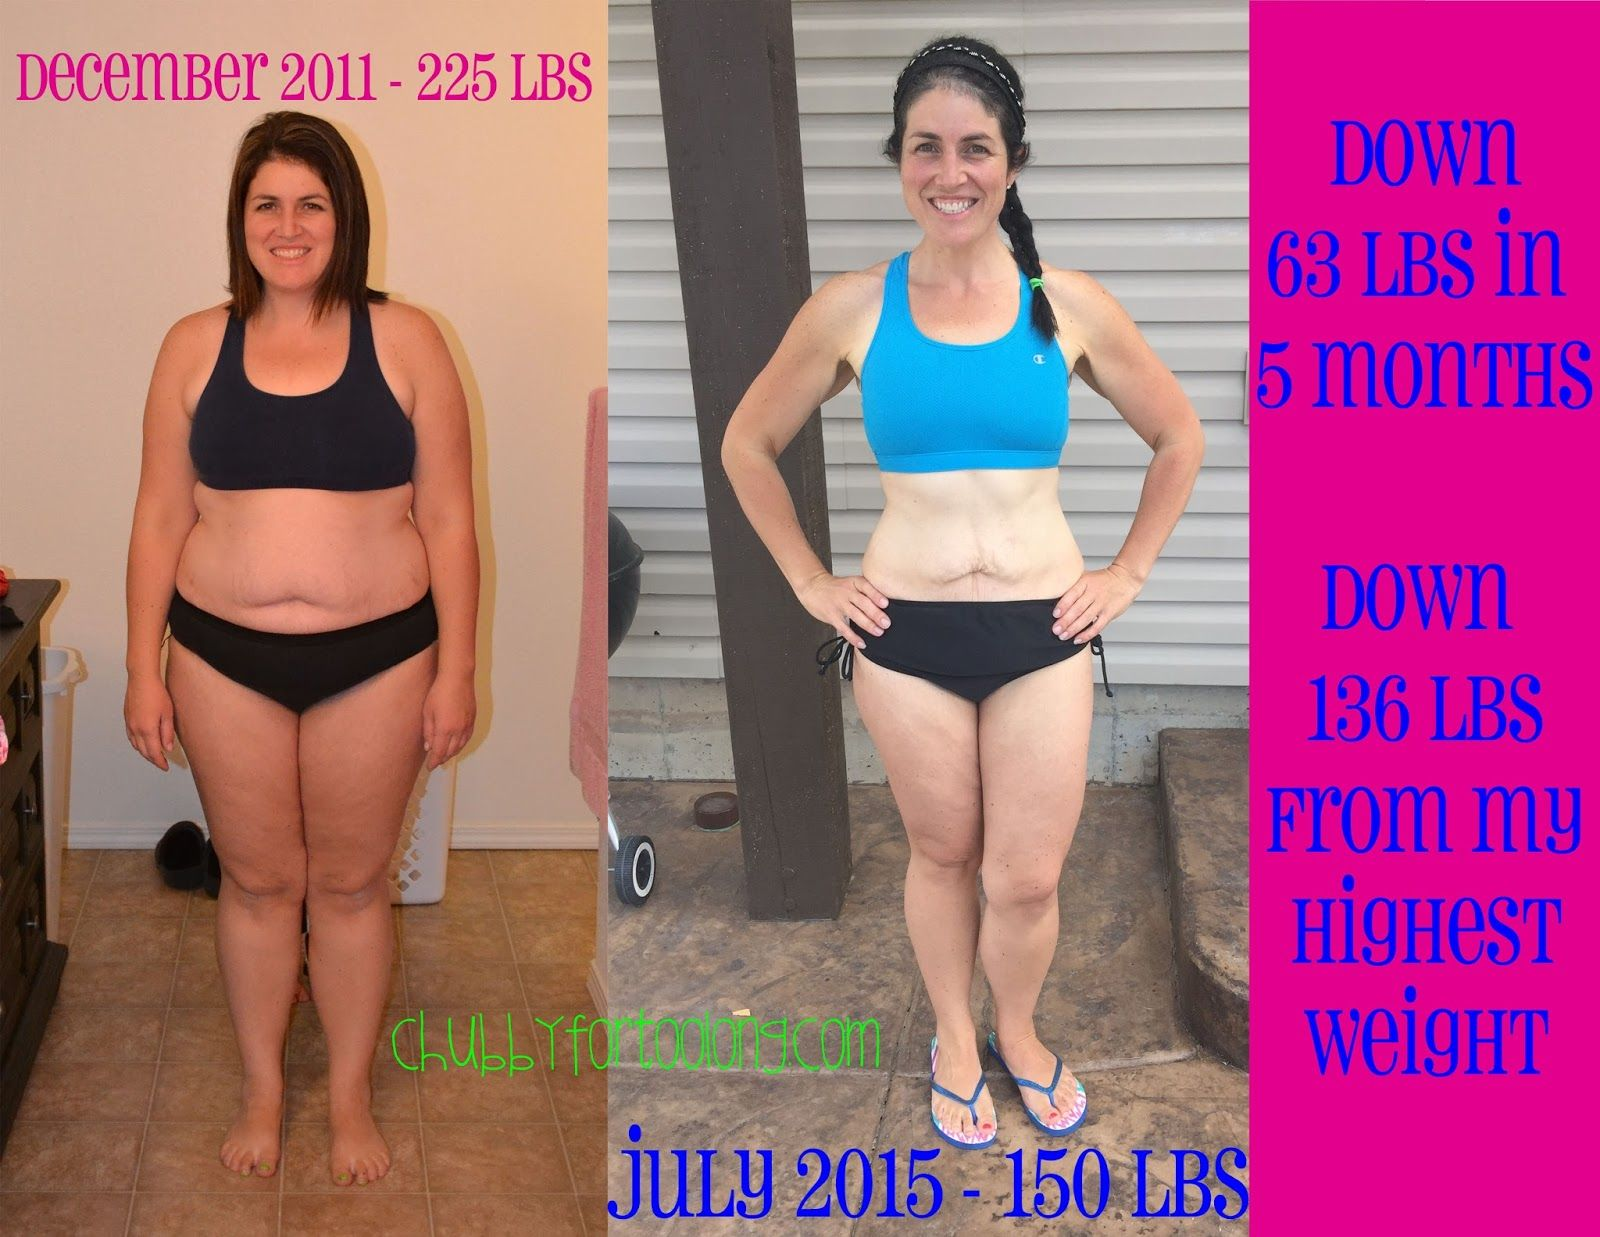 Chubby for too long!: Before and After photos! Actually, progress photos! Still a work in ...